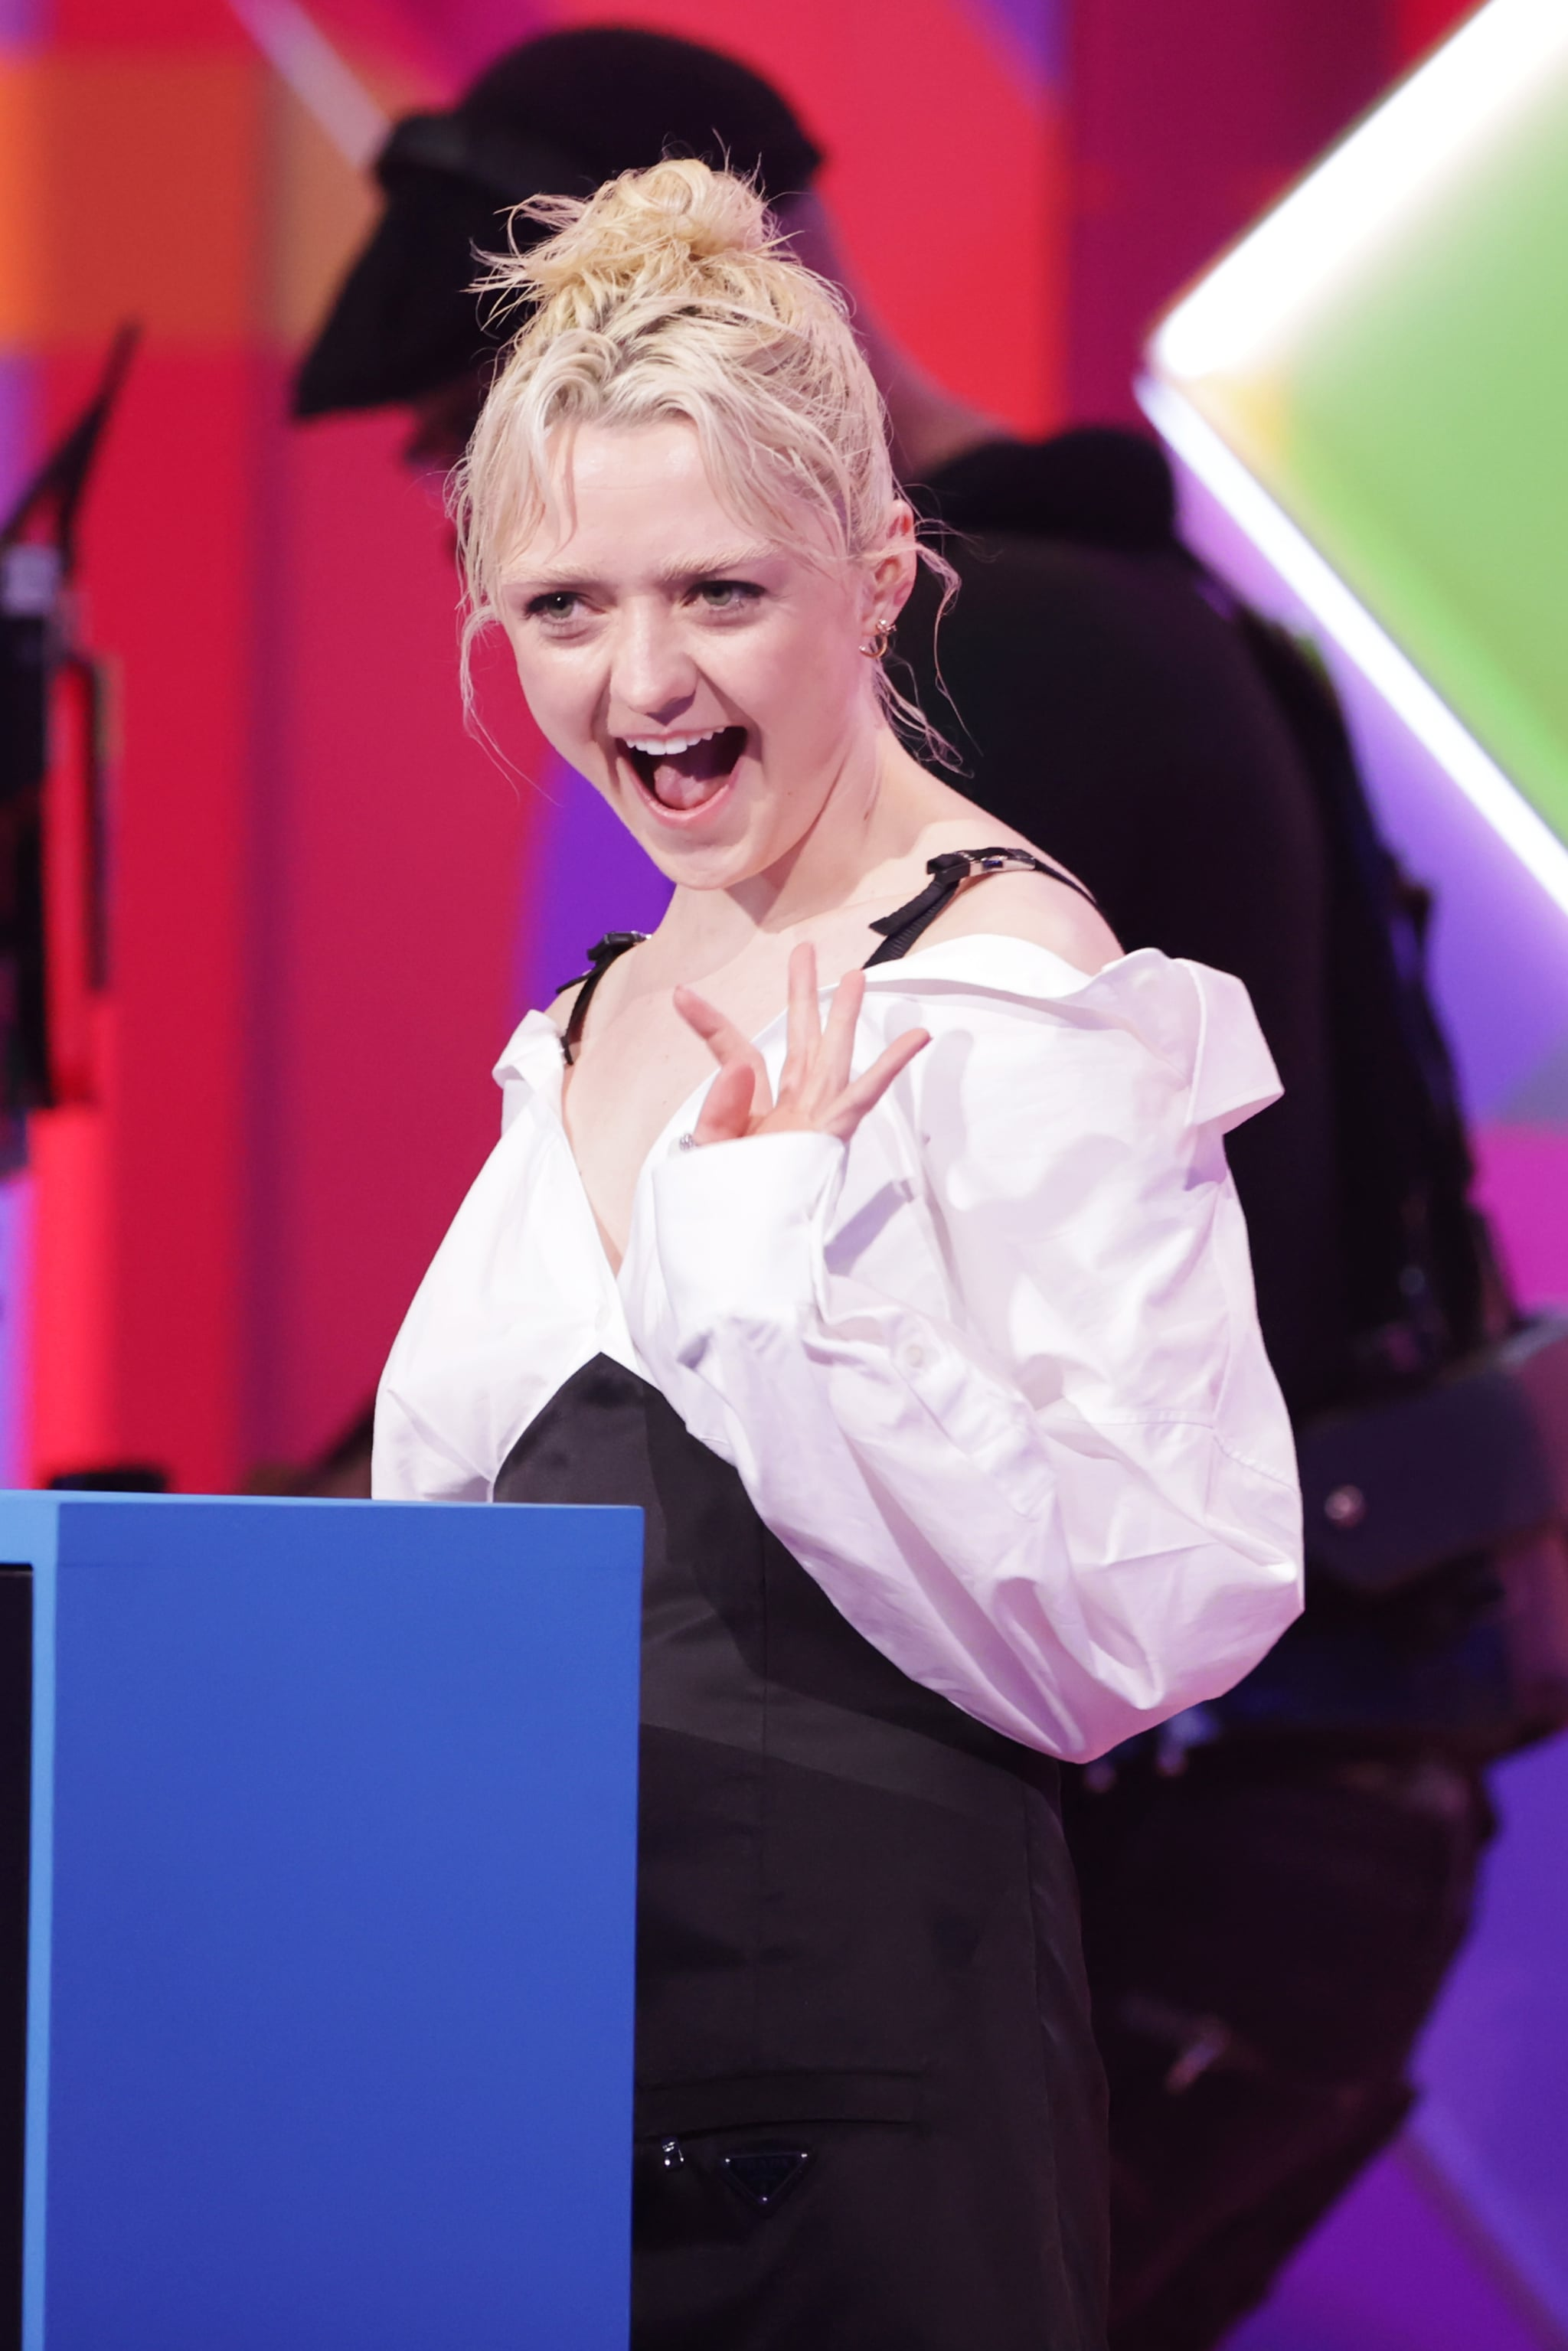 LONDON, ENGLAND - MAY 11:    Maisie Williams presents an award at The BRIT Awards 2021 at The O2 Arena on May 11, 2021 in London, England.  (Photo by David M. Benett/Dave Benett/Getty Images)